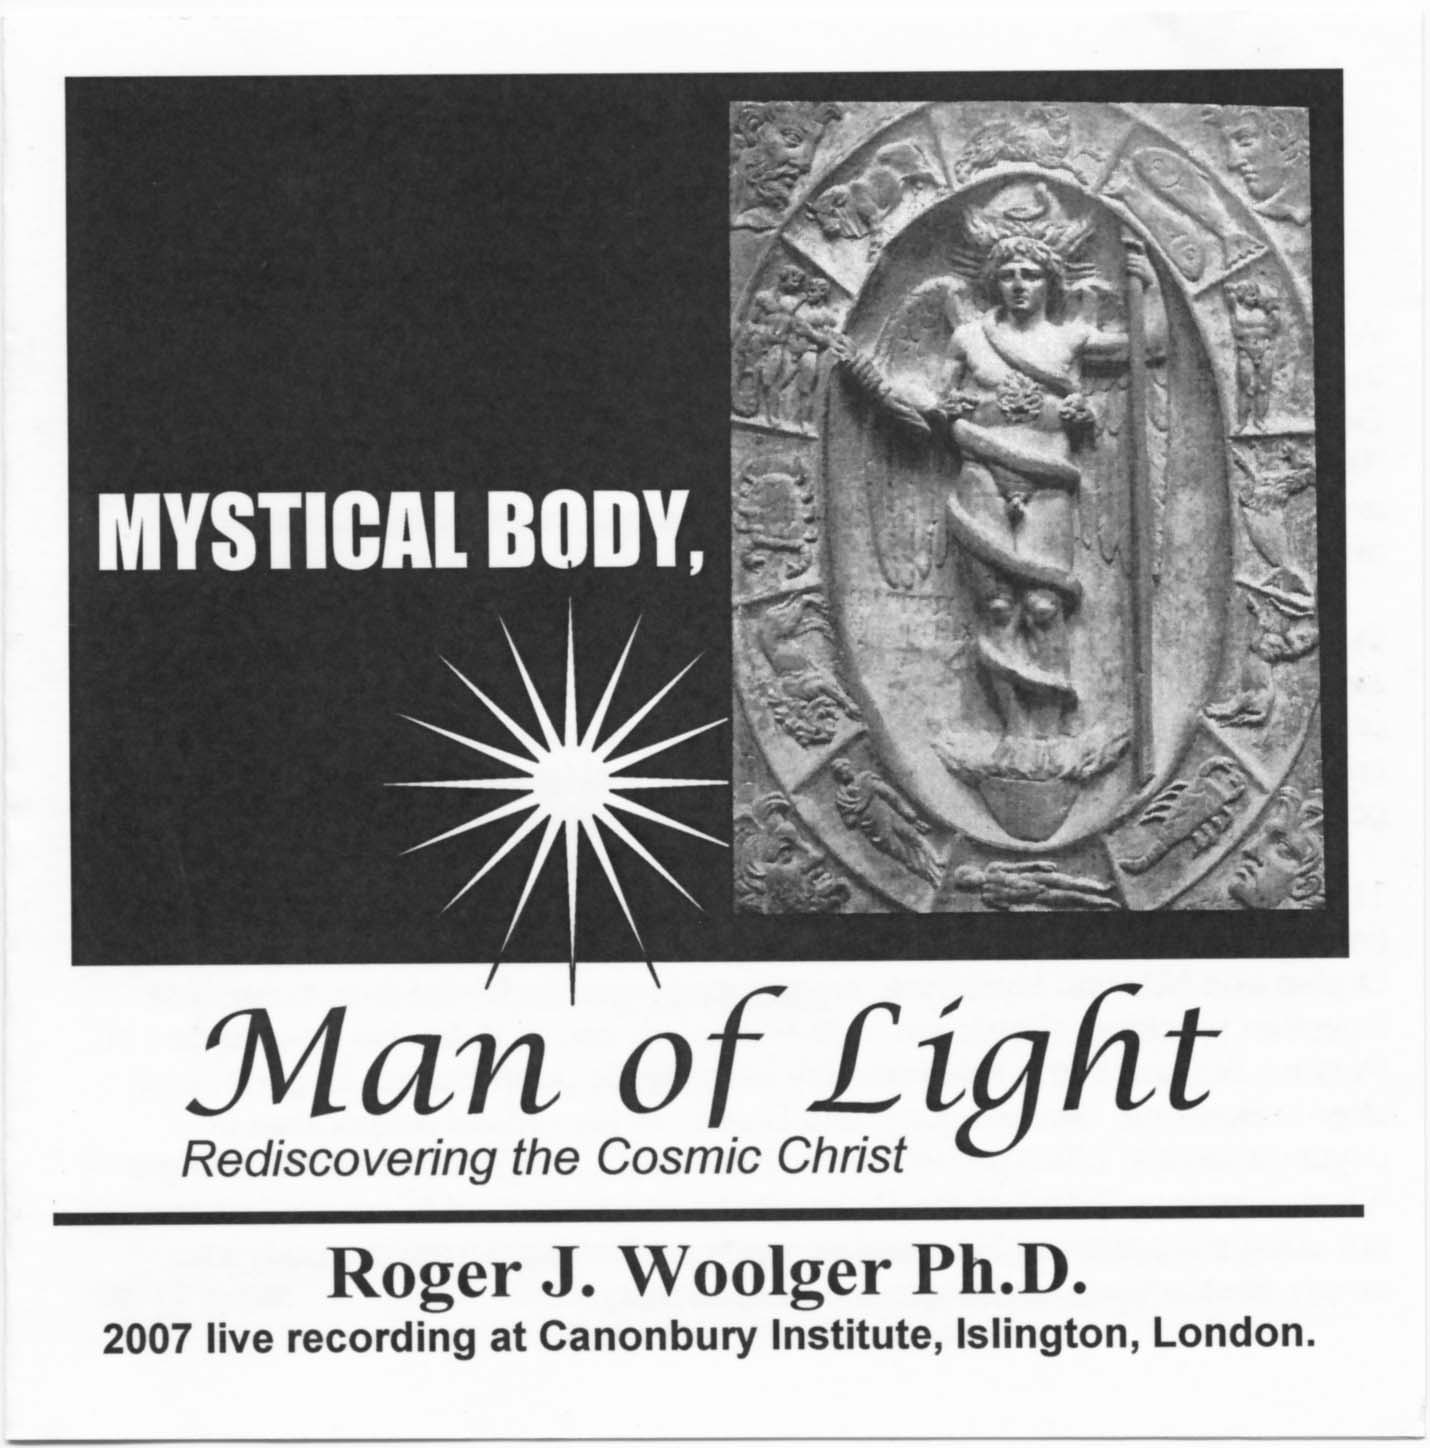 Mystical Body, Man of Light: The Lost Secret of the Cosmic Christ